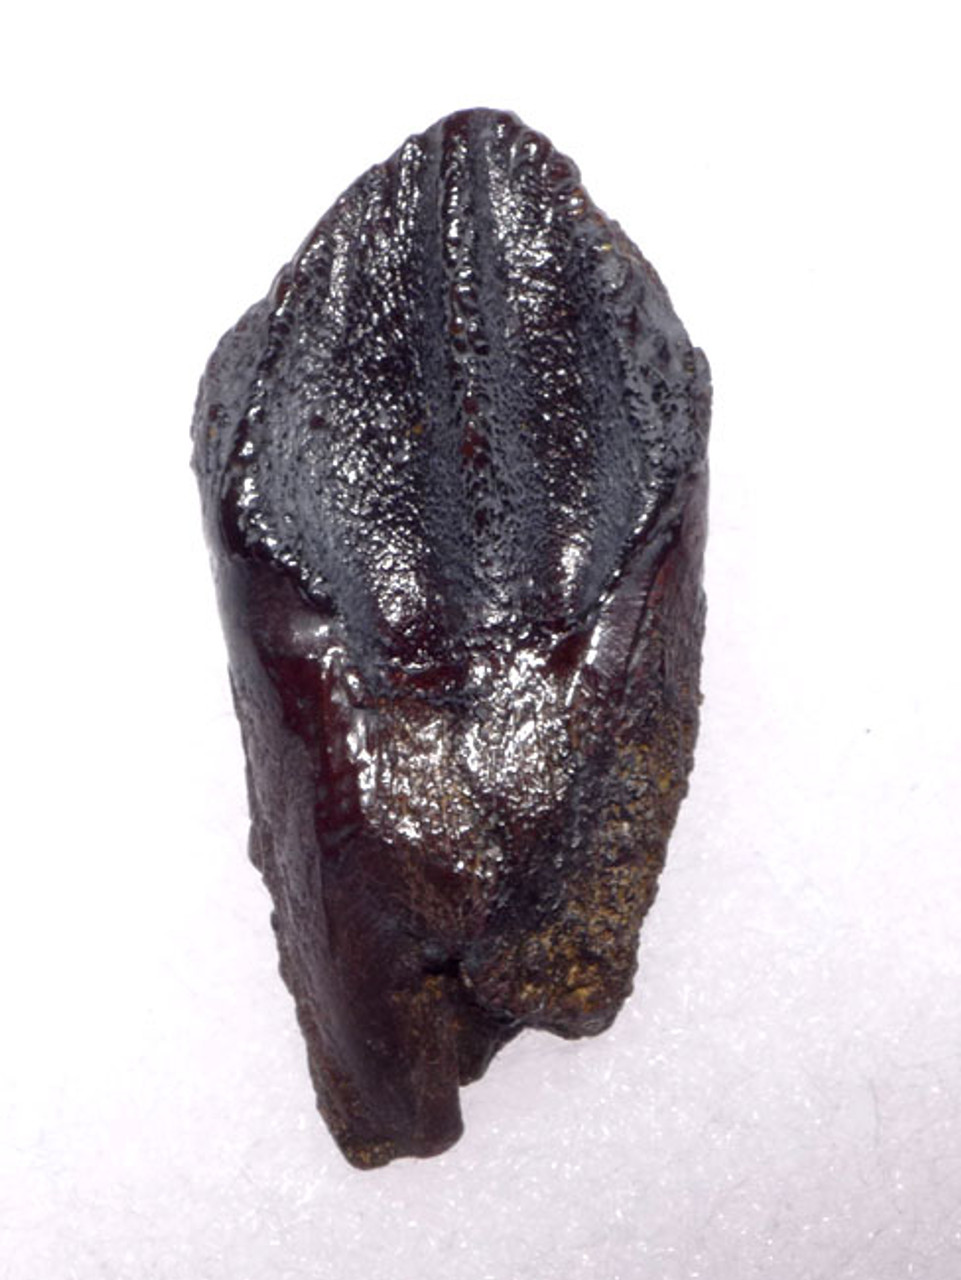 TOP GRADE TRICERATOPS DINOSAUR TOOTH WITH PARTIAL ROOT AND INTACT UNWORN CROWN *DT19-044